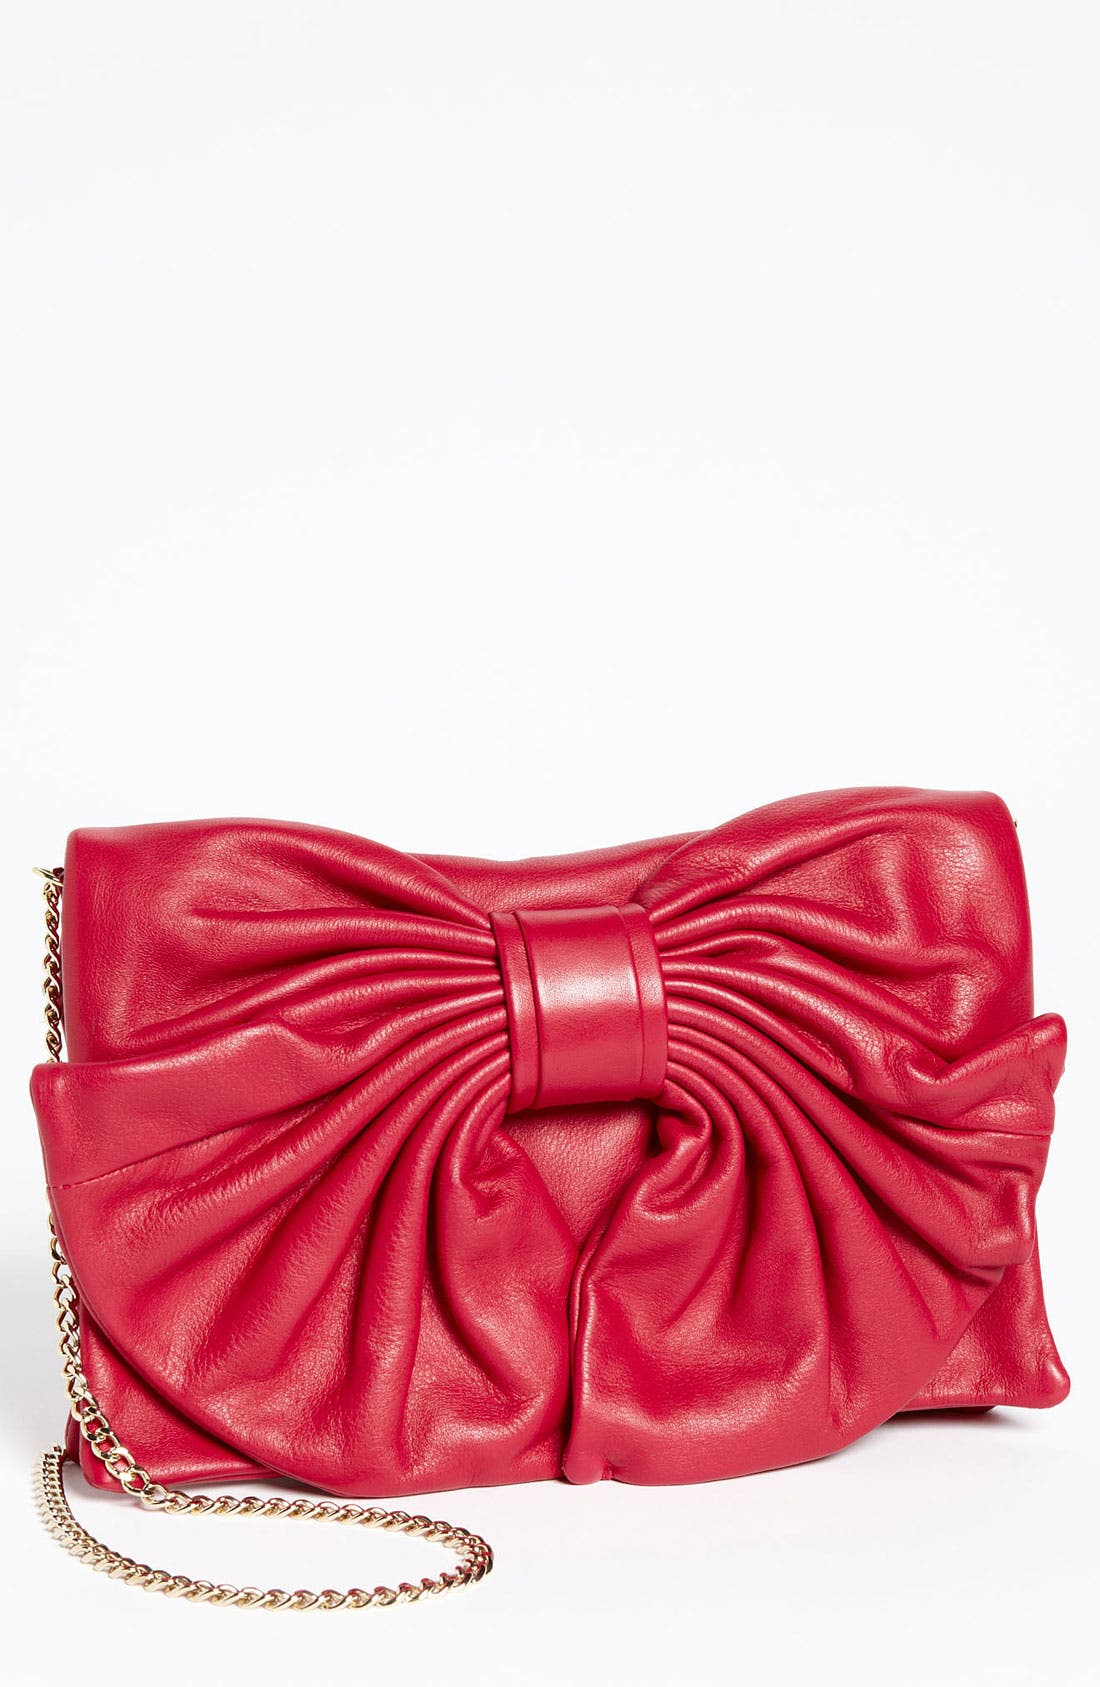 Main Image - RED Valentino 'Bow' Leather Clutch